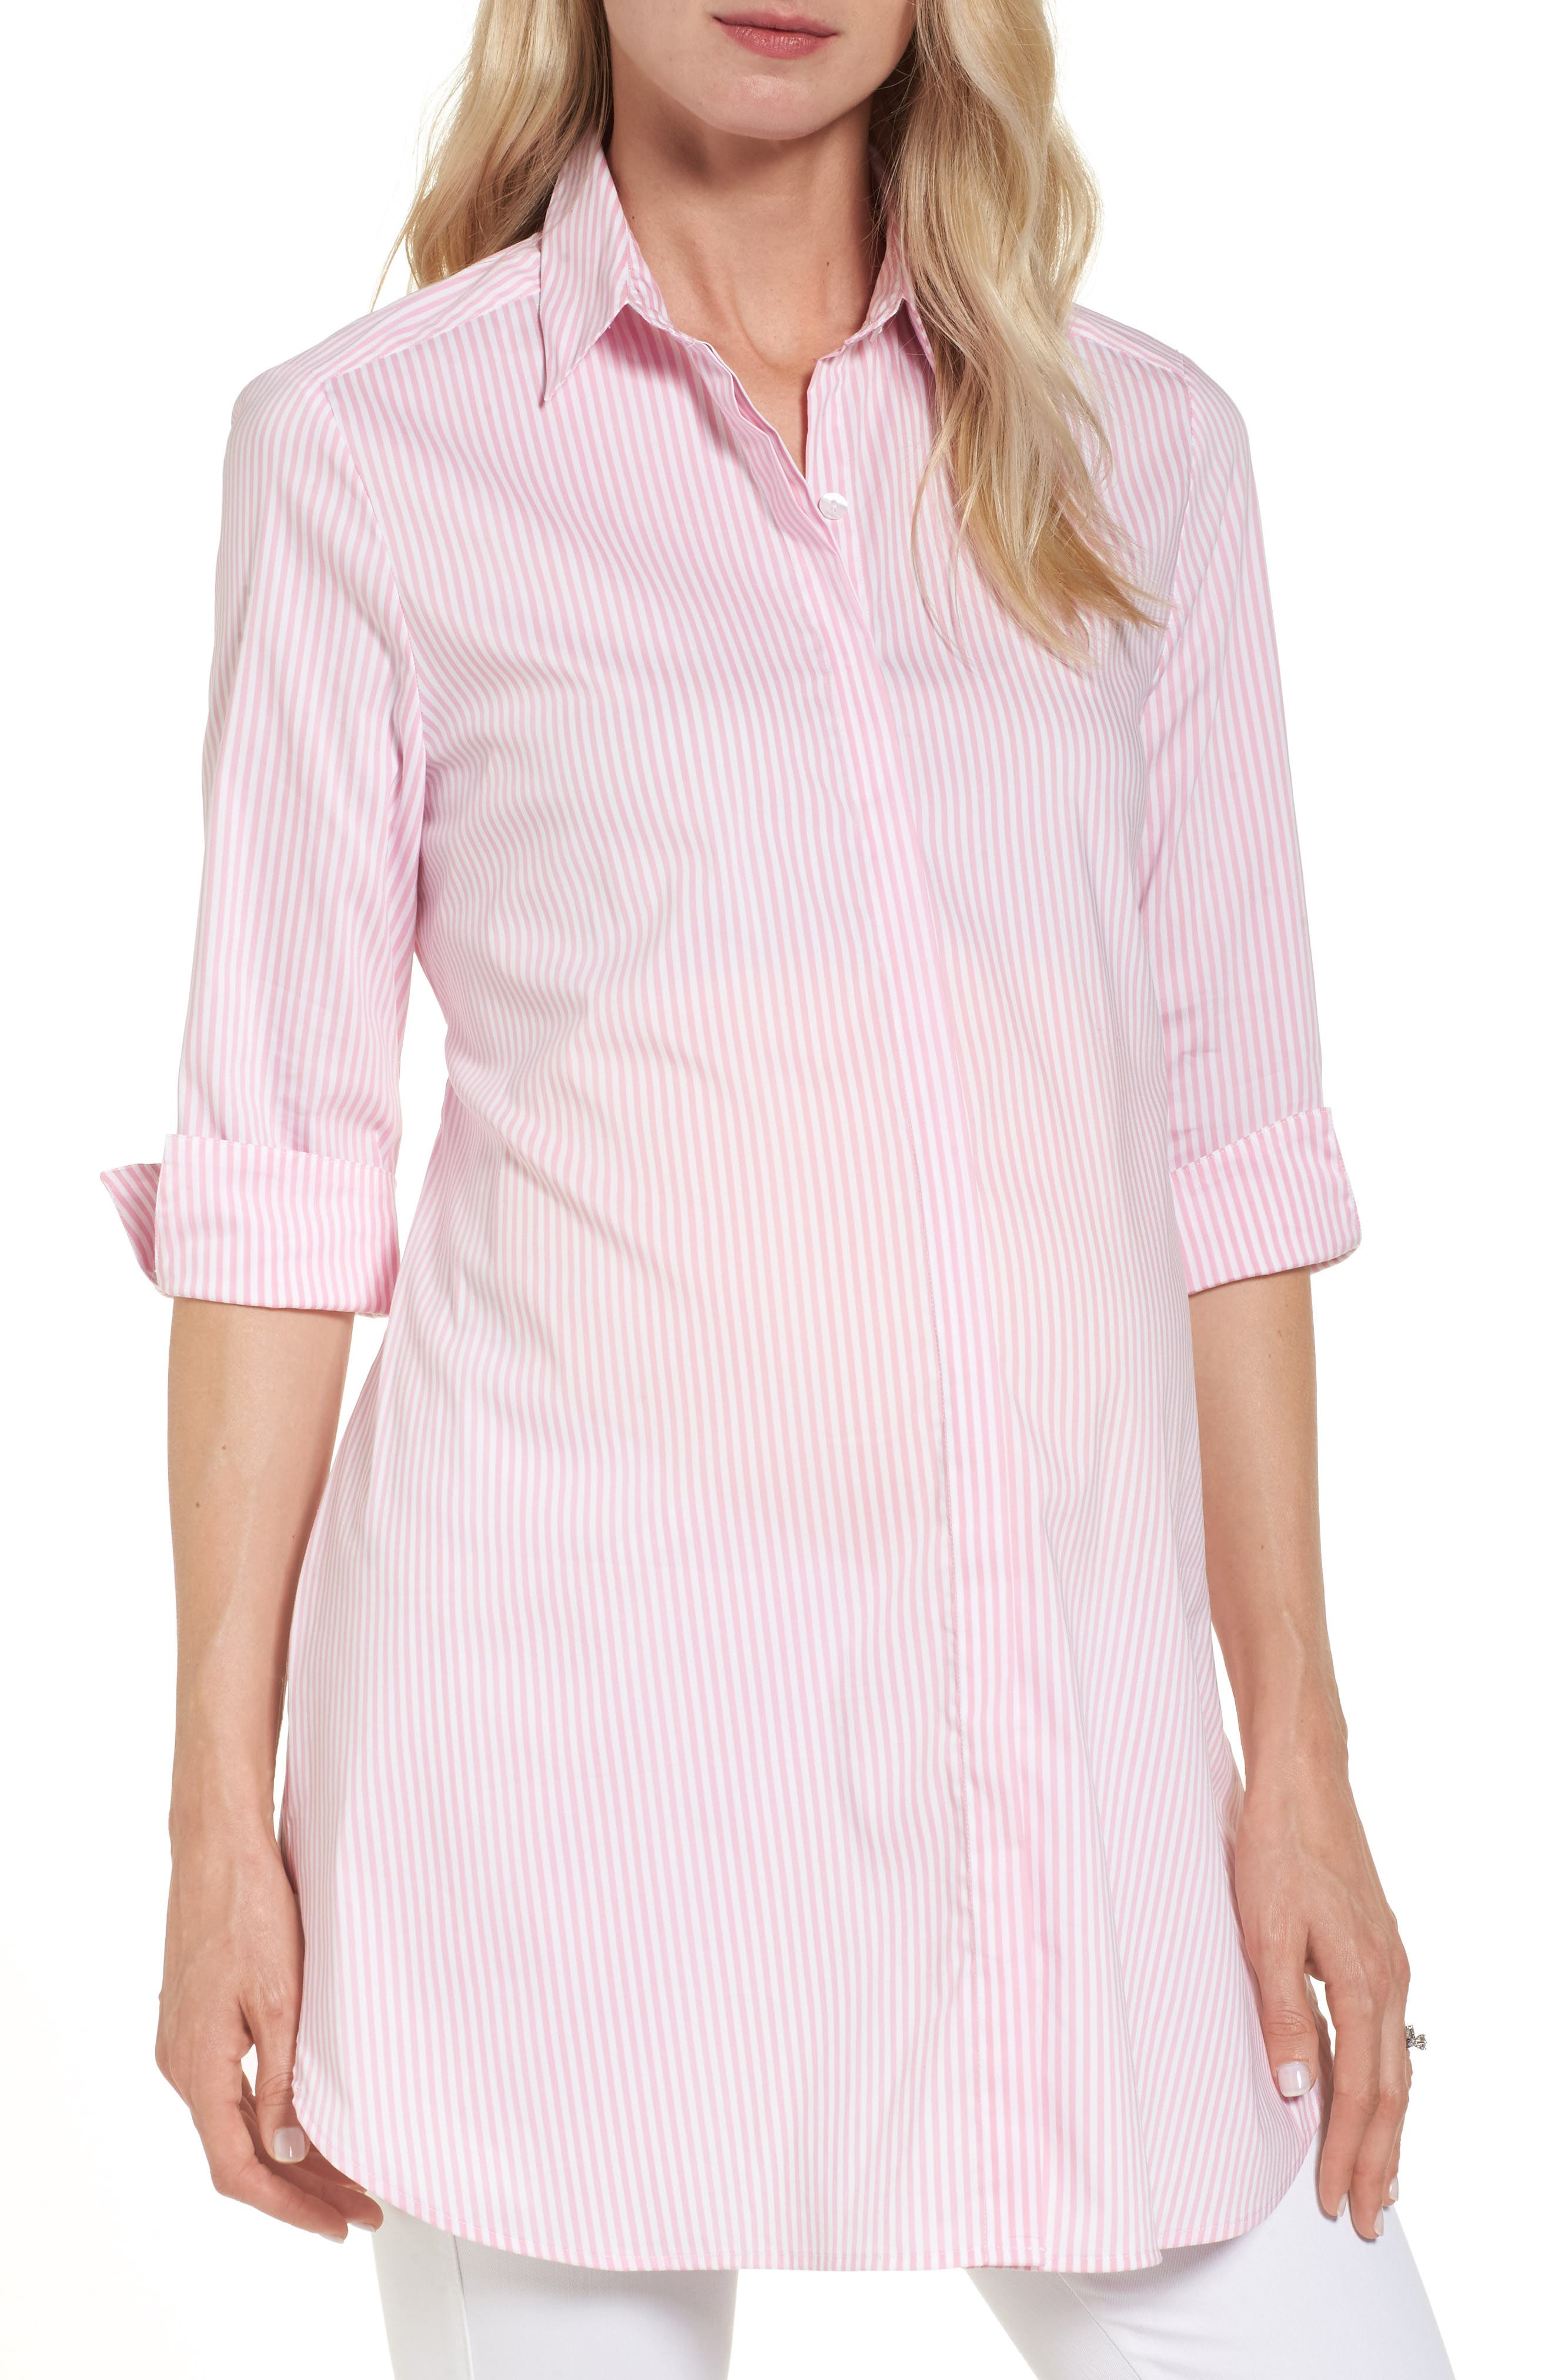 Dora Stripe Maternity Shirt,                         Main,                         color, Pink And White Stripe